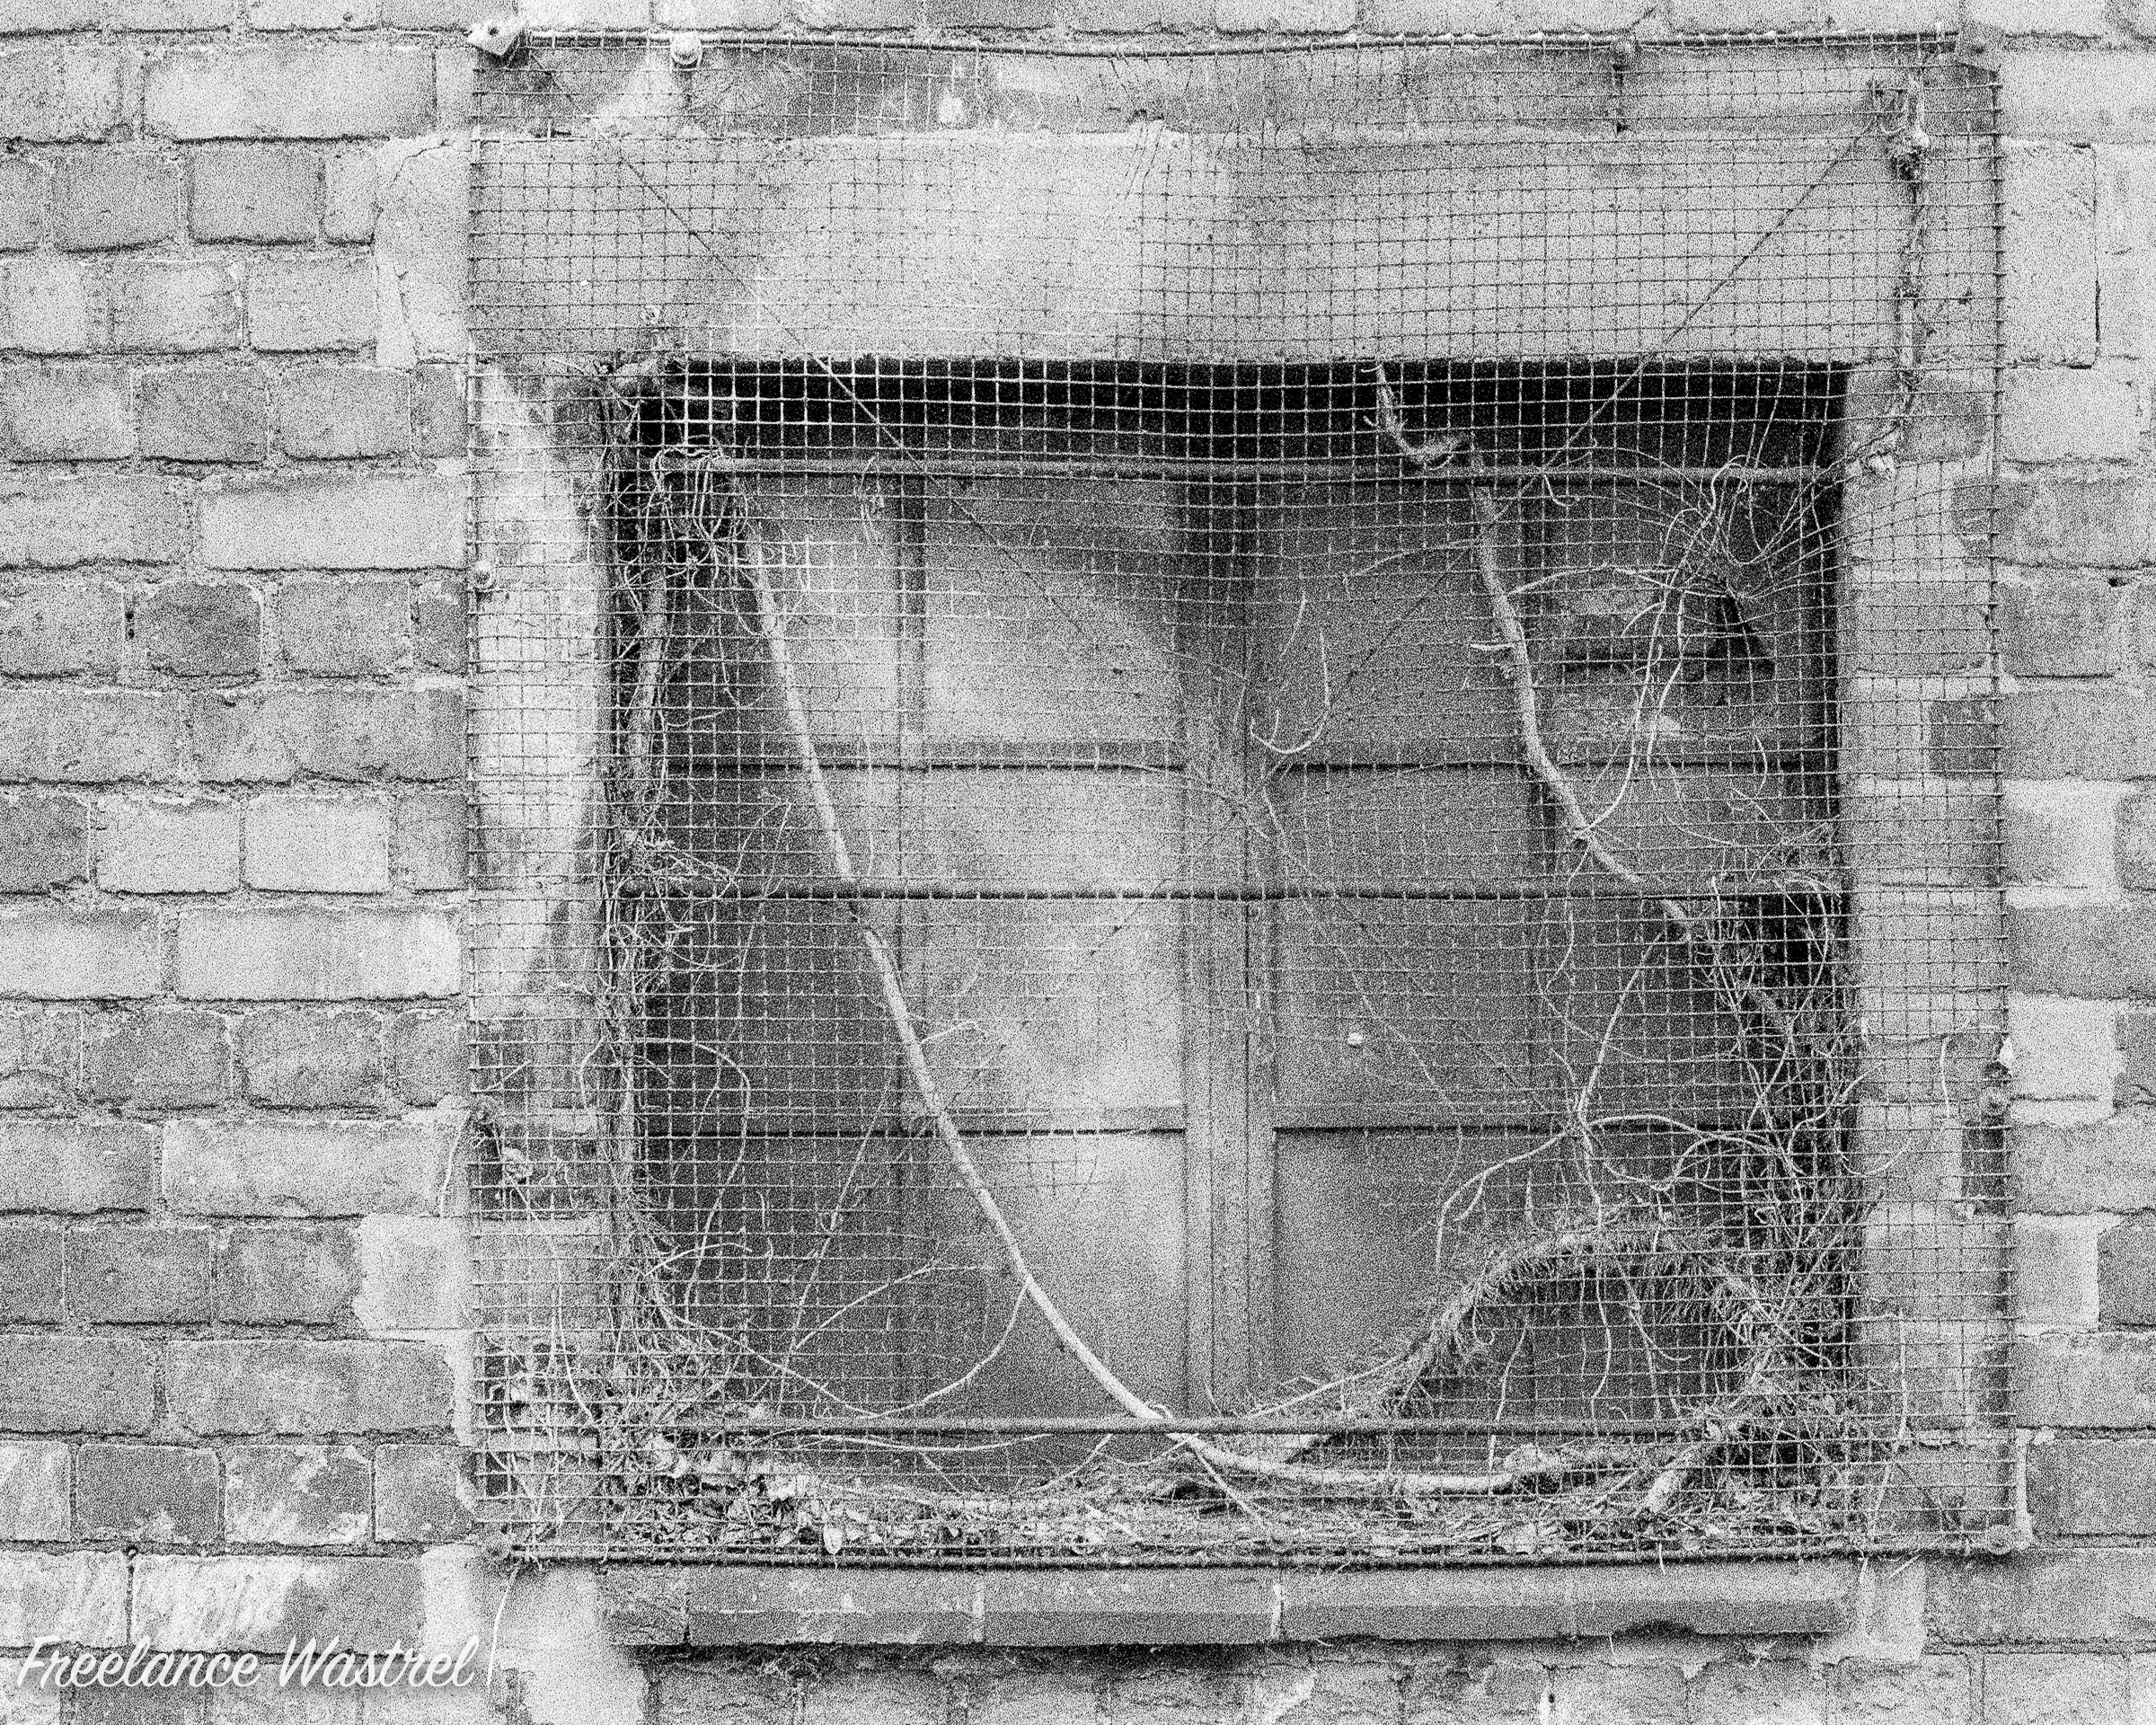 Barred window, Long Eaton